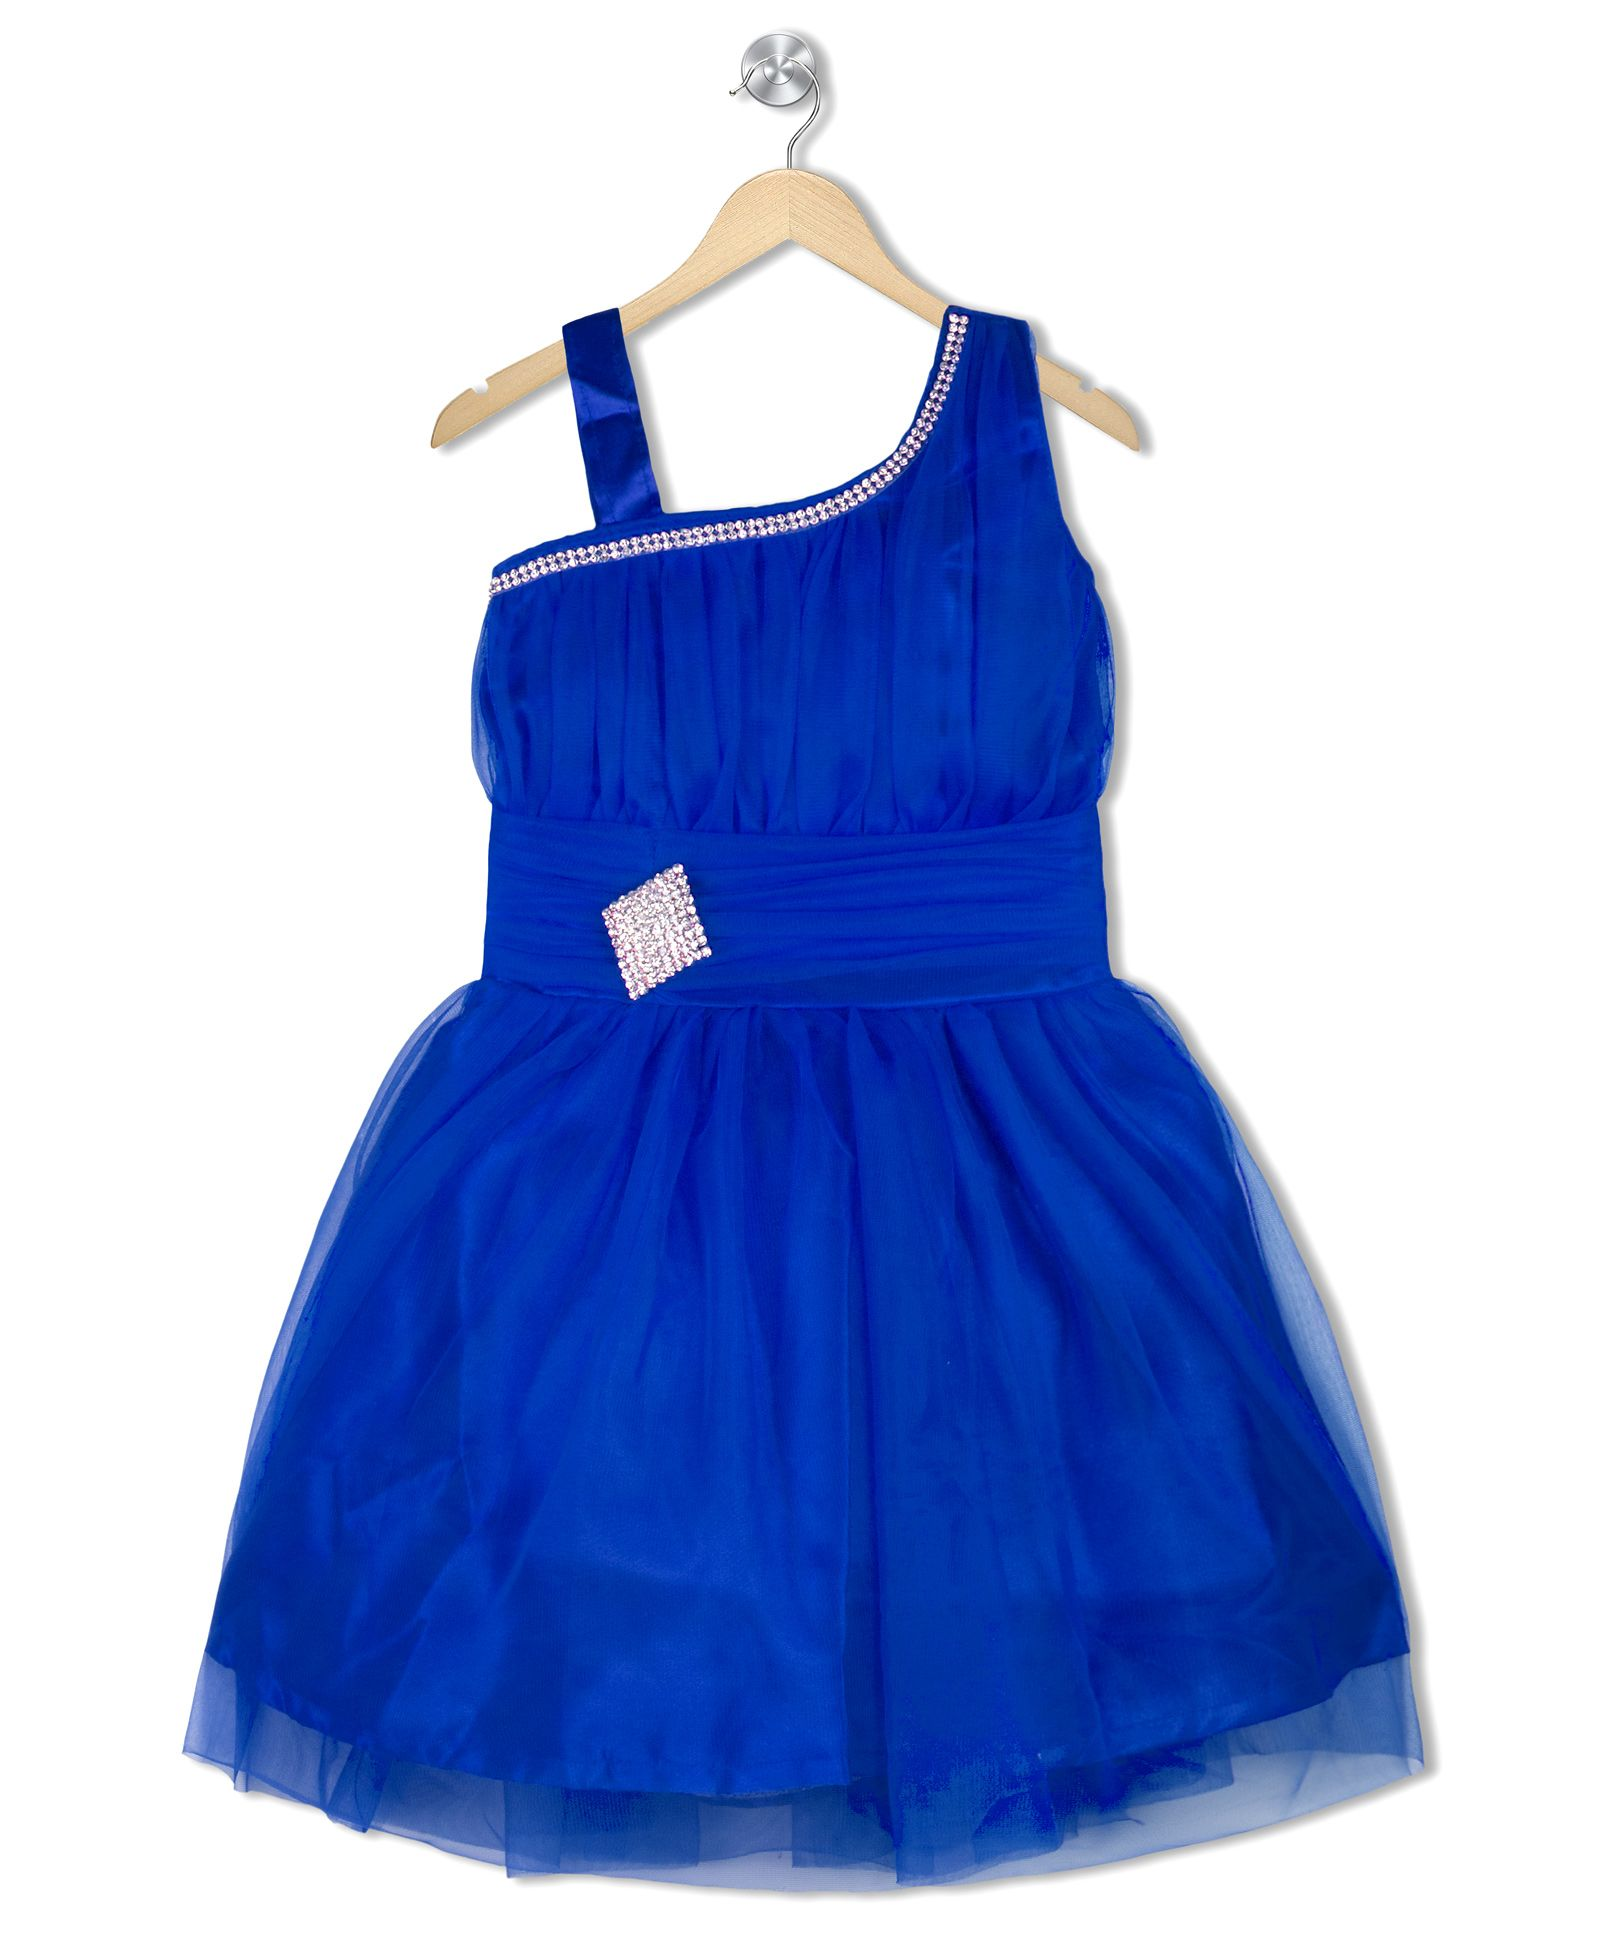 Upto 52% Off On Party Wear Dress By Firstcry | Aarika Diamond Studded Applique Empire Waist Dress - Blue @ Rs.287.52